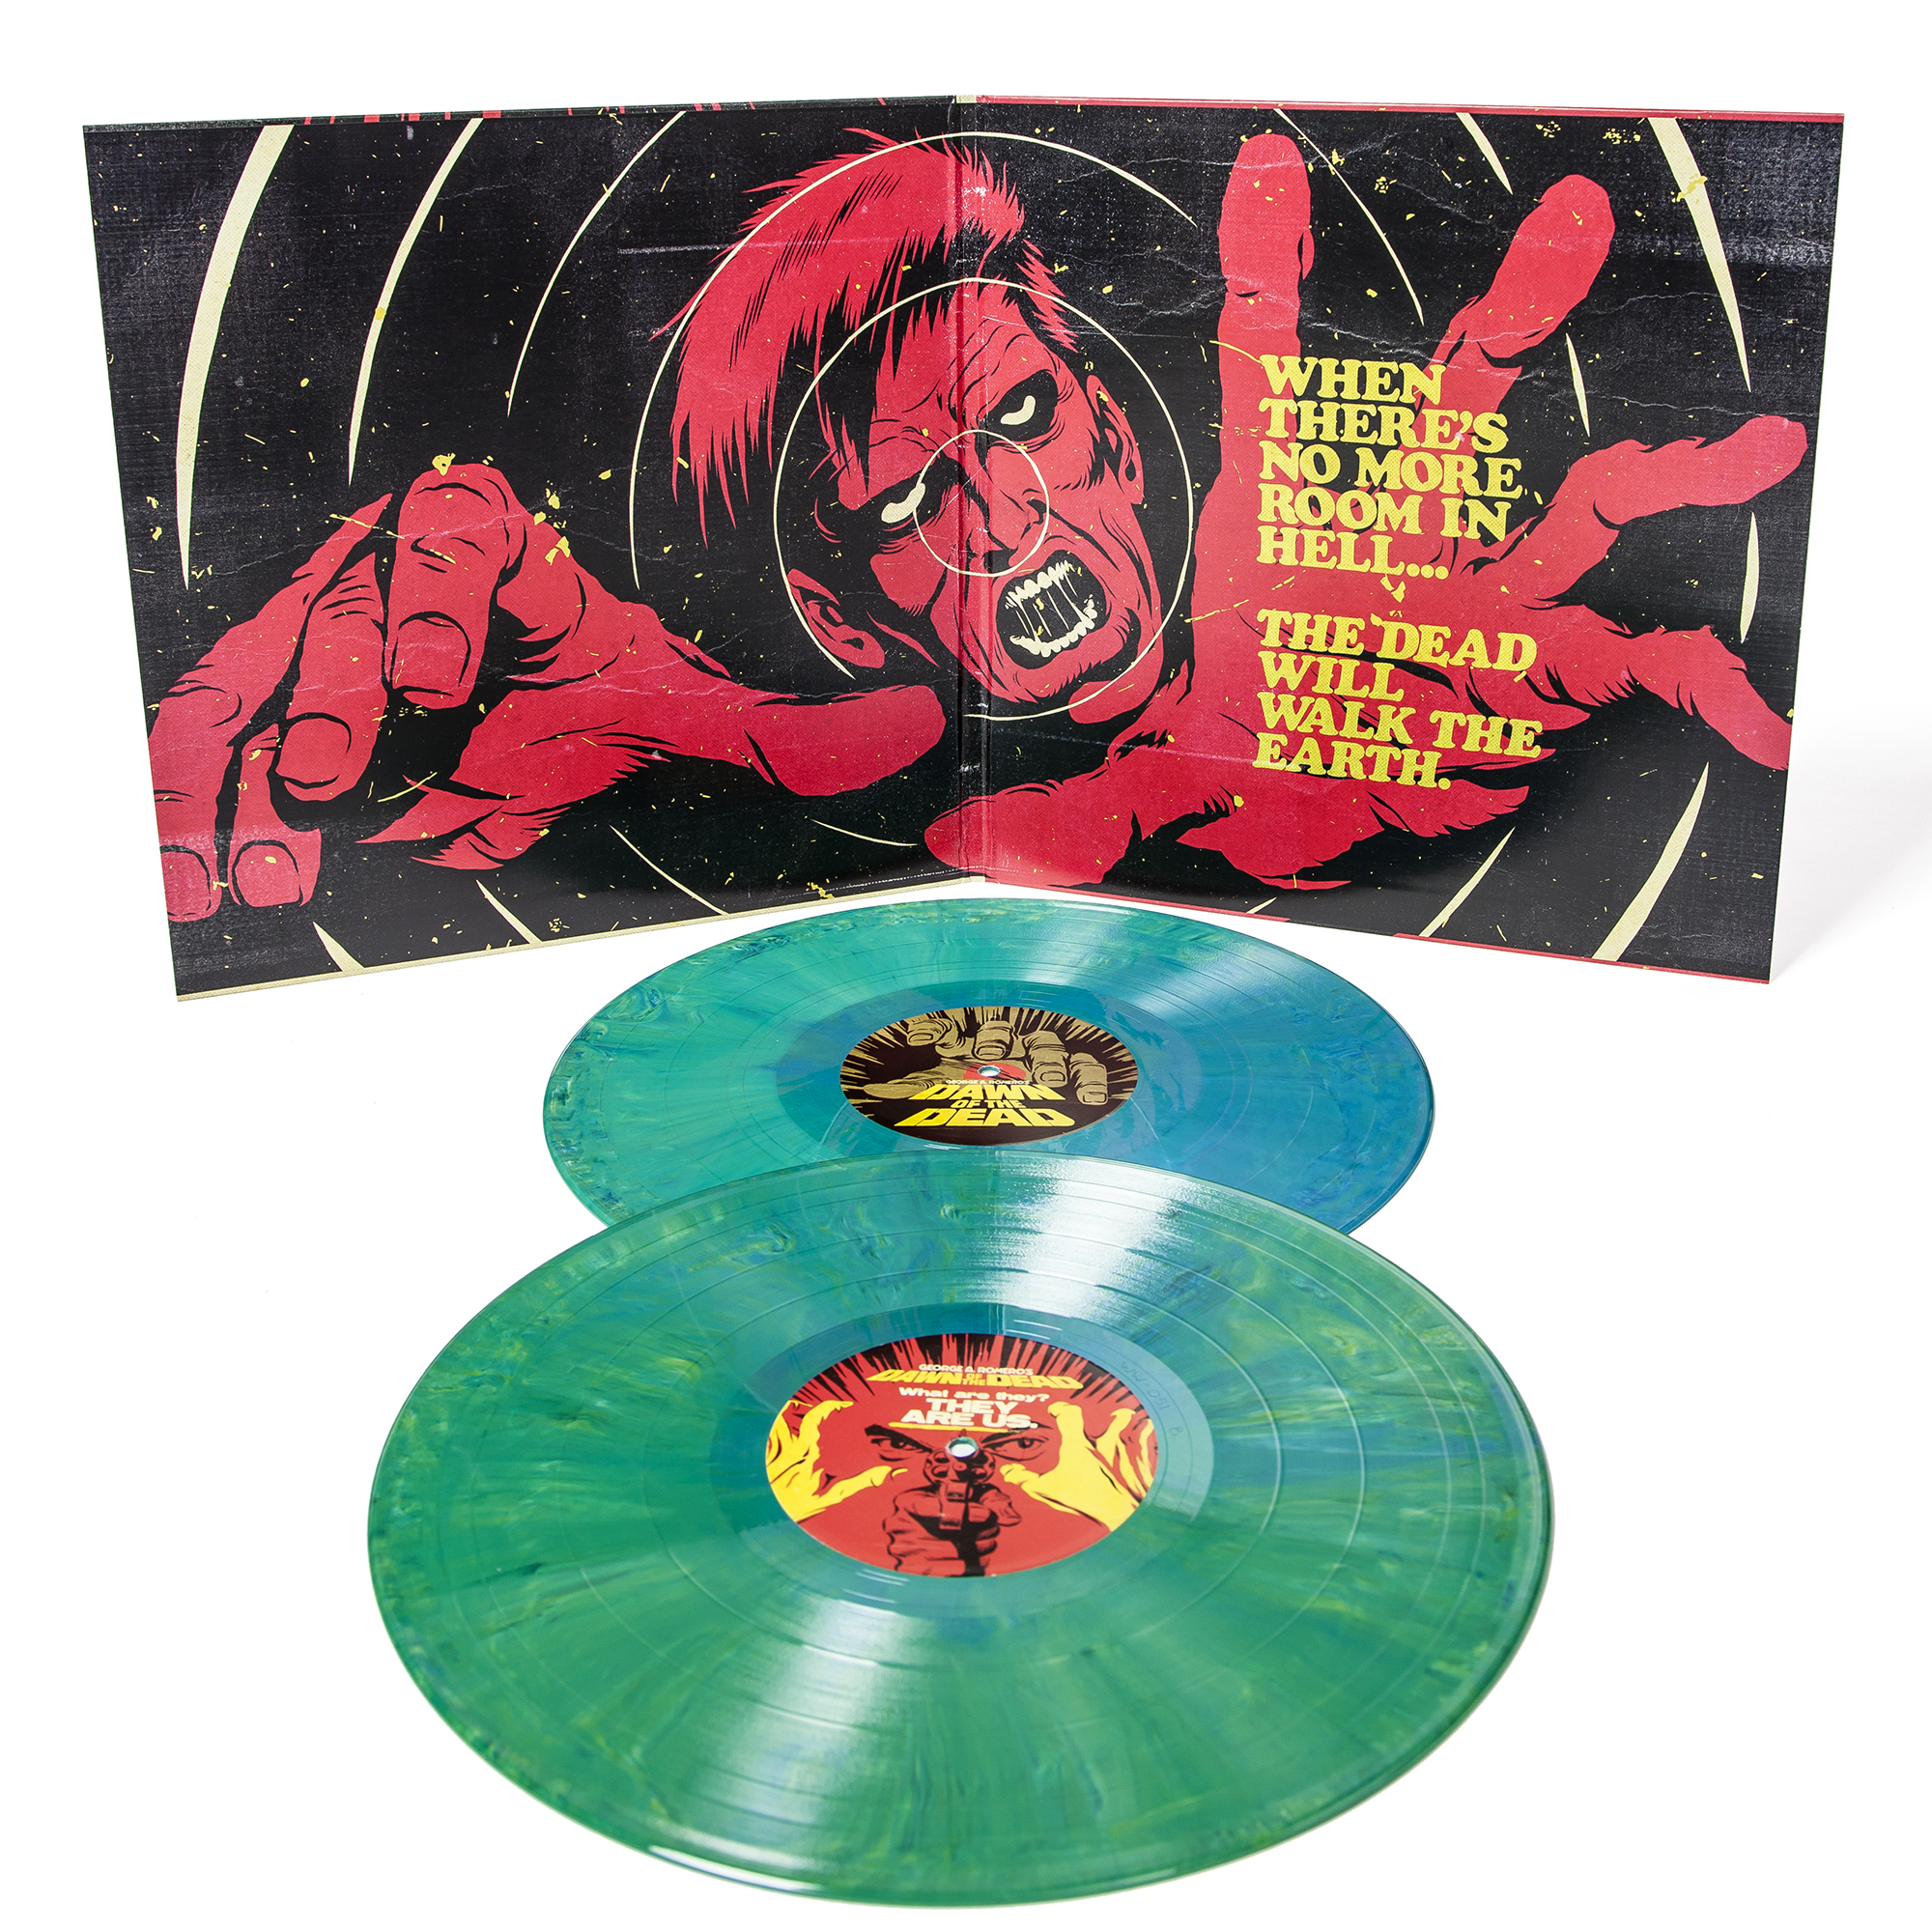 Dawn of the Dead soundtrack vinyl reissue